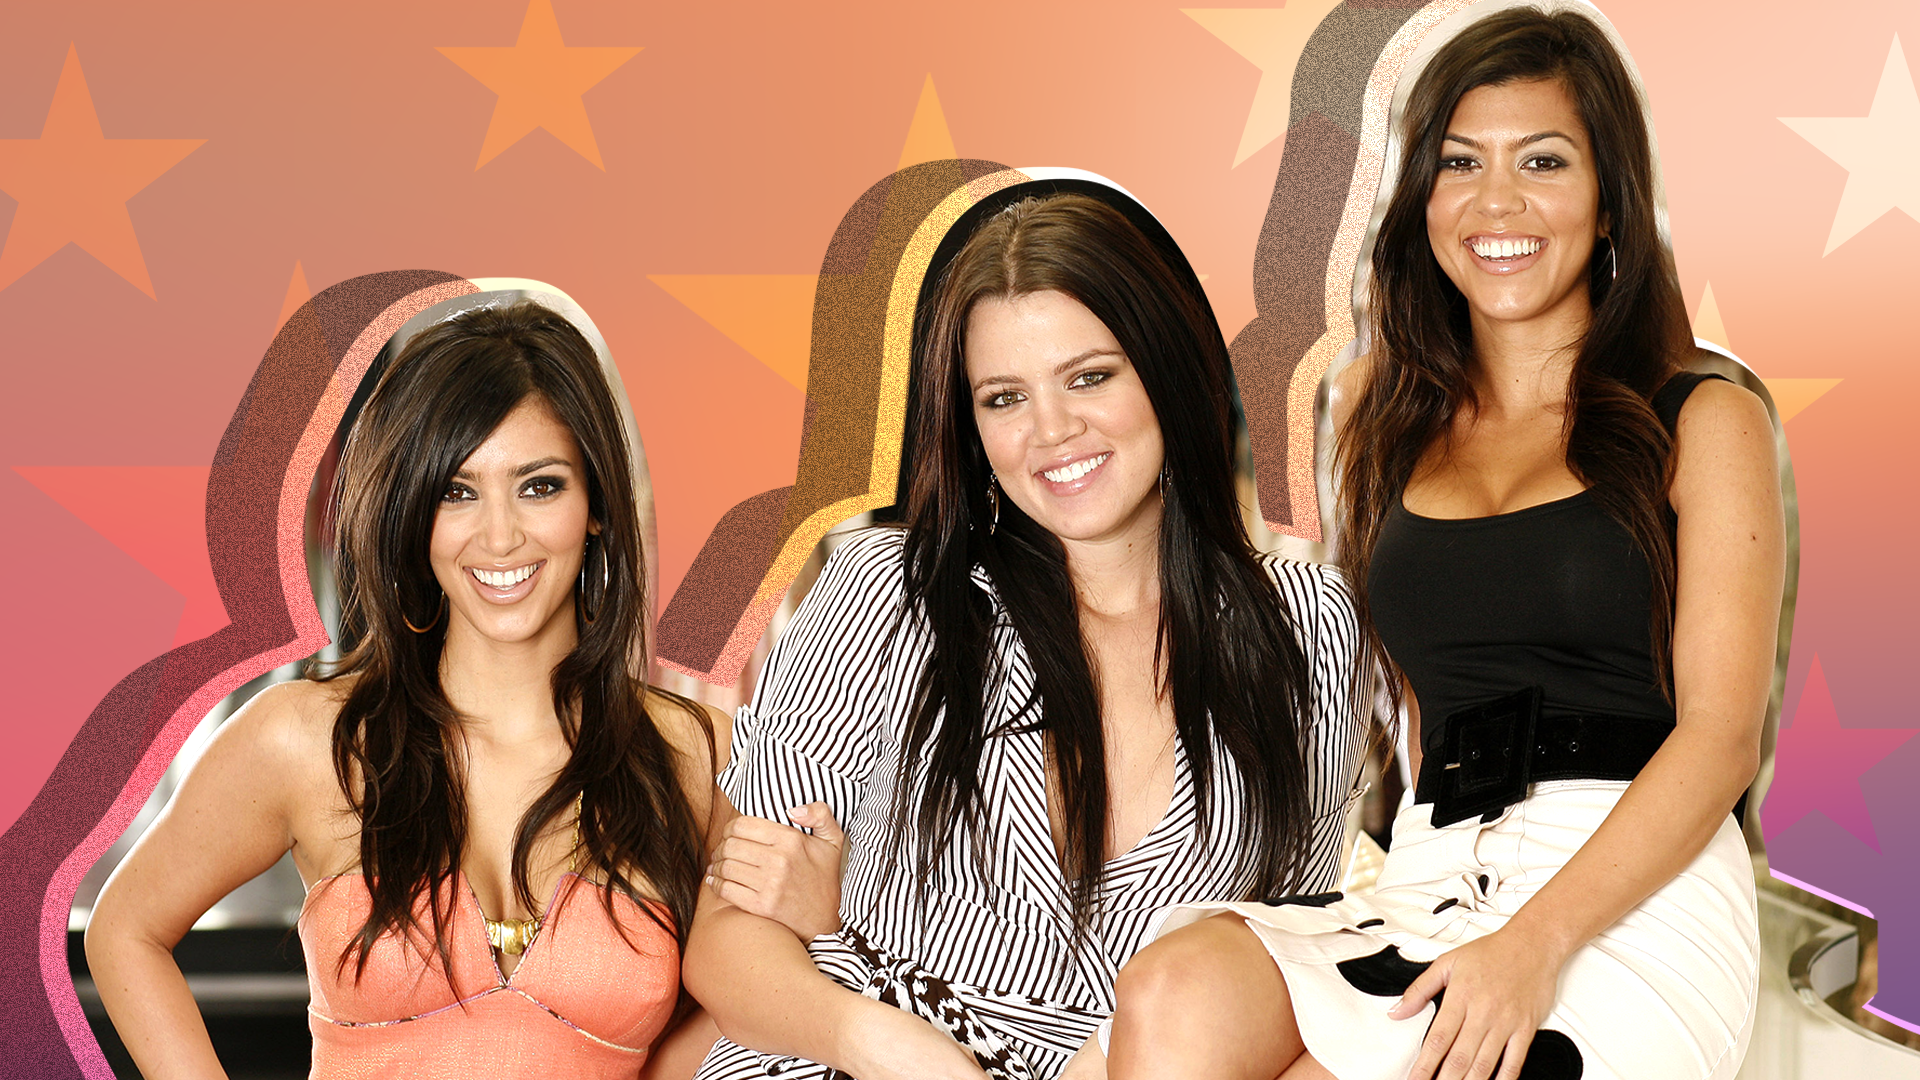 Kardashian Jenner Pictures Before They Were Famous Stylecaster